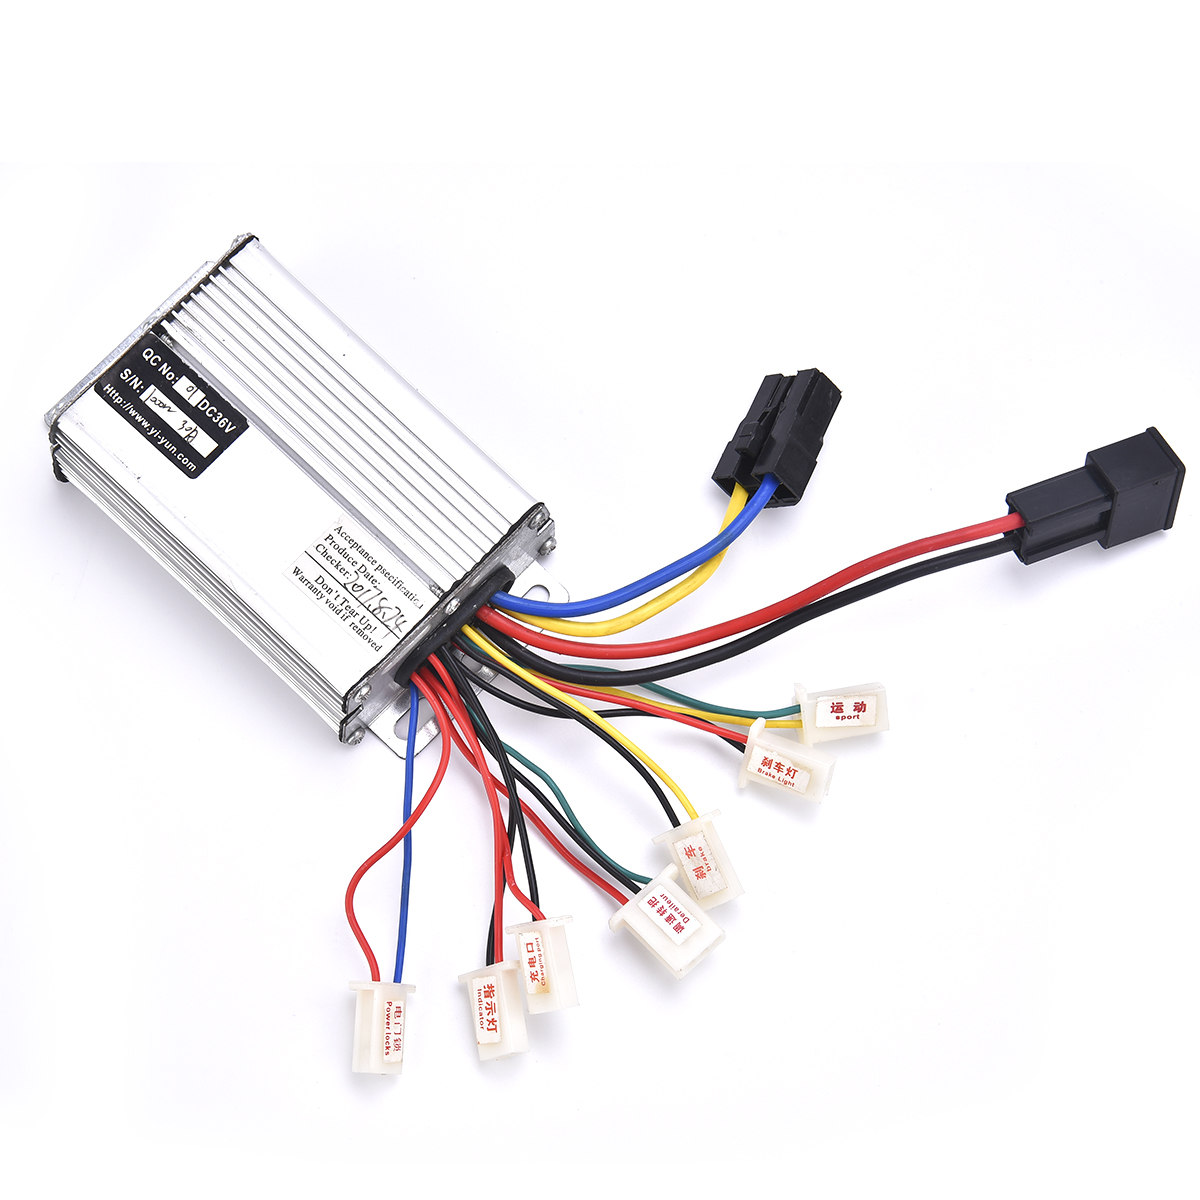 36v 1000w Controller For Brushed Electric Motor Engine Scooter 1000 Watt Wiring Diagram 1 X Brush